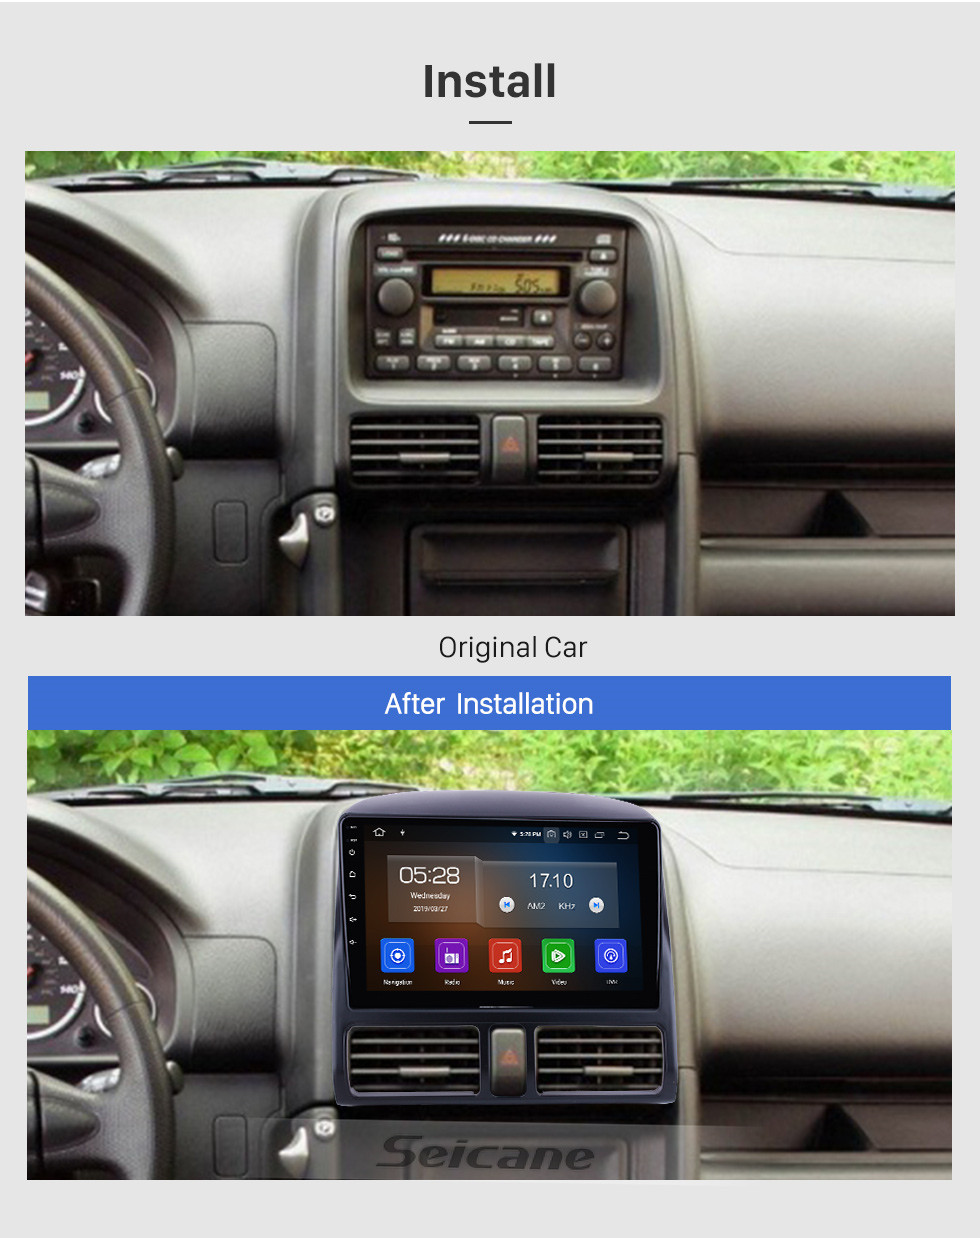 Seicane For 2002 Honda CRV Radio 9 inch Android 10.0 HD Touchscreen Bluetooth with GPS Navigation System WIFI Carplay support 1080P Video